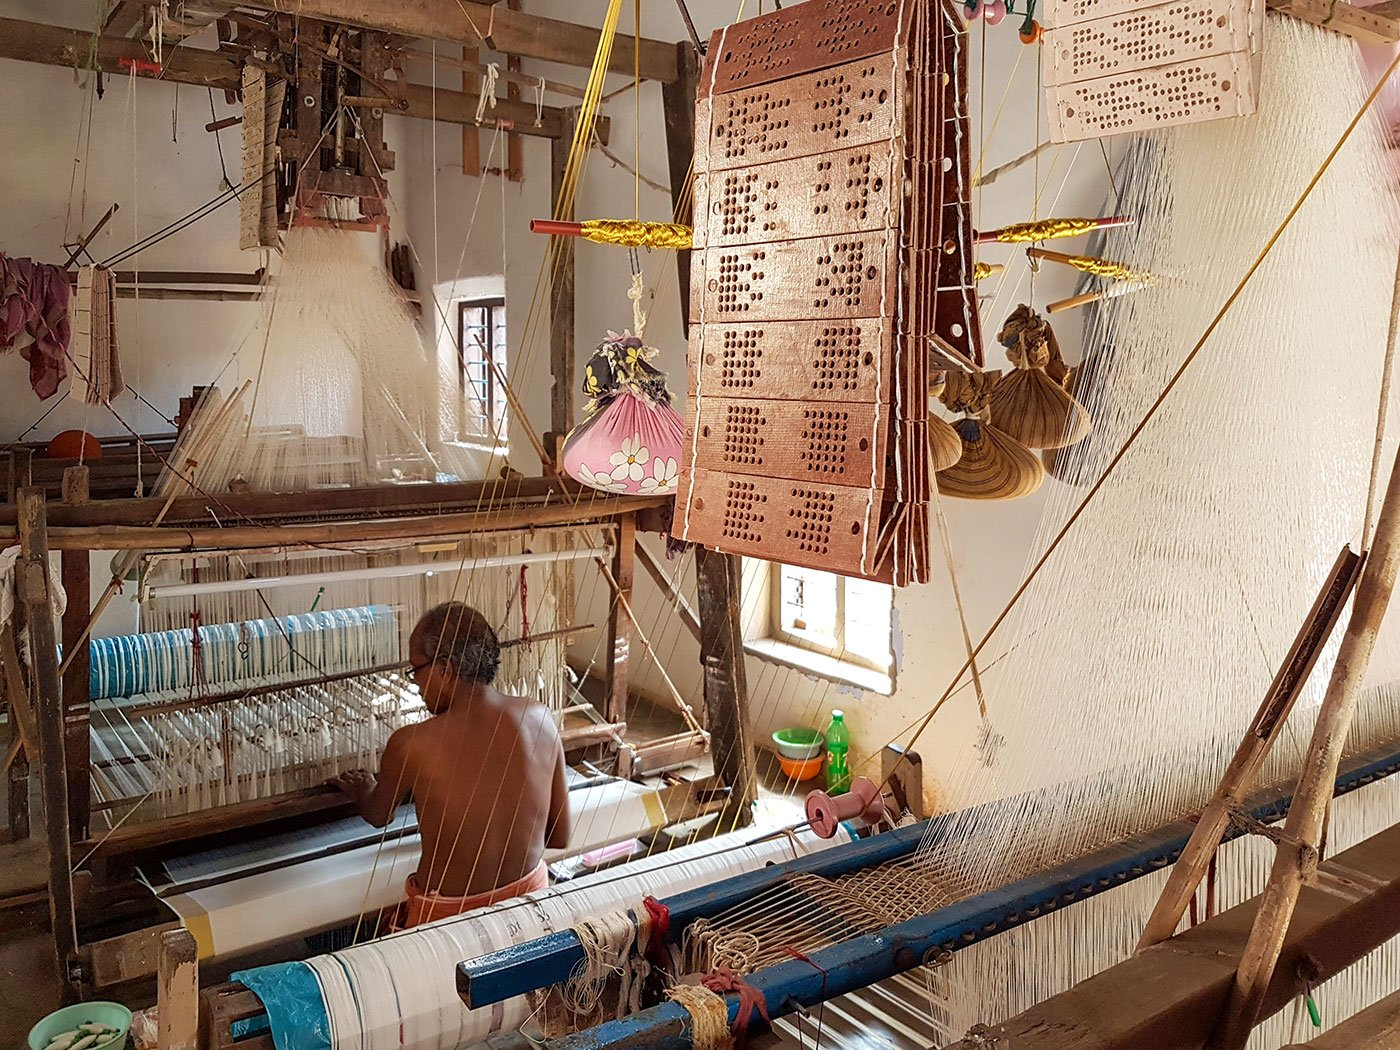 Mani works on a loom inside his home.